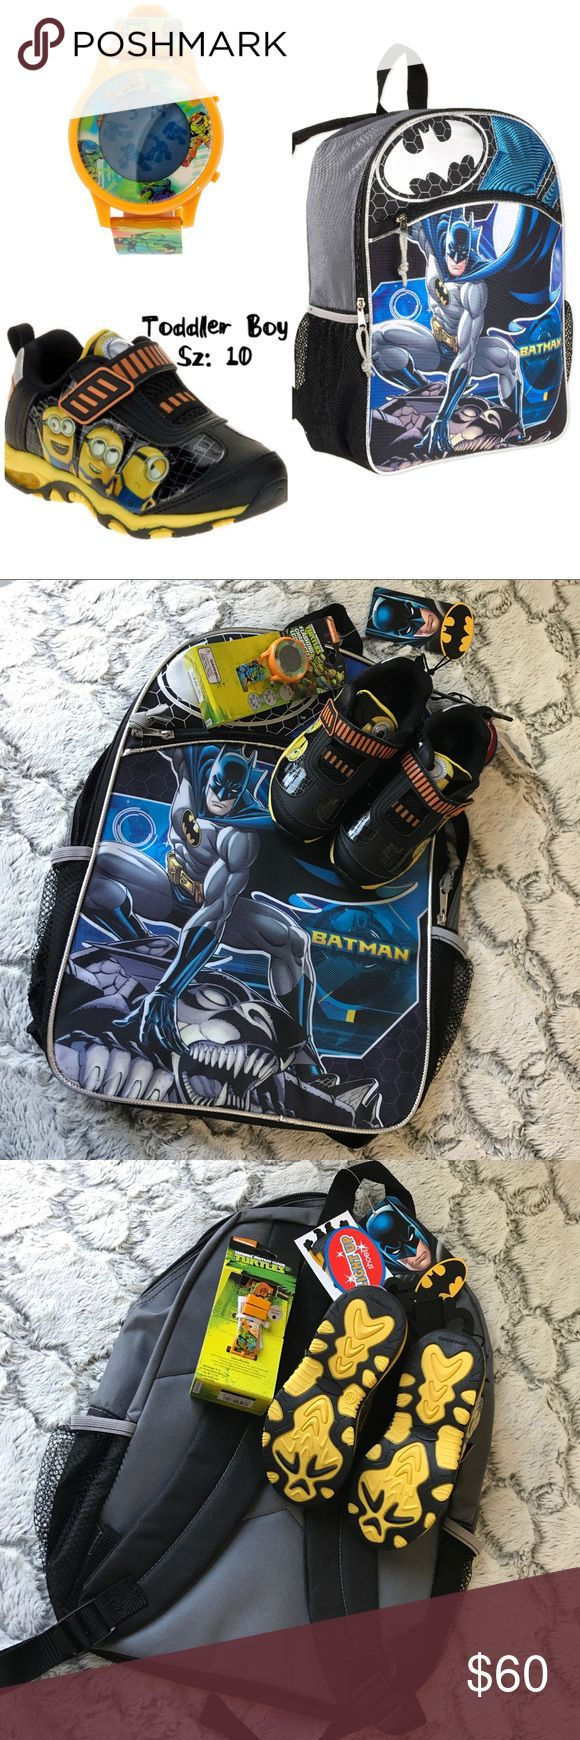 💫NWT🌸SUMMER Boy Mix/Match 3Piece Set🤖 New Boy Mix And Match 3-Piece Set includes: 1 Boy Pair Minion Light Up Sneakers Sz: 10, 1 Boy Ninja Turtle Watch and 1 Boy Batman Backpack.  Brand New w Tags and in Box. Accessories